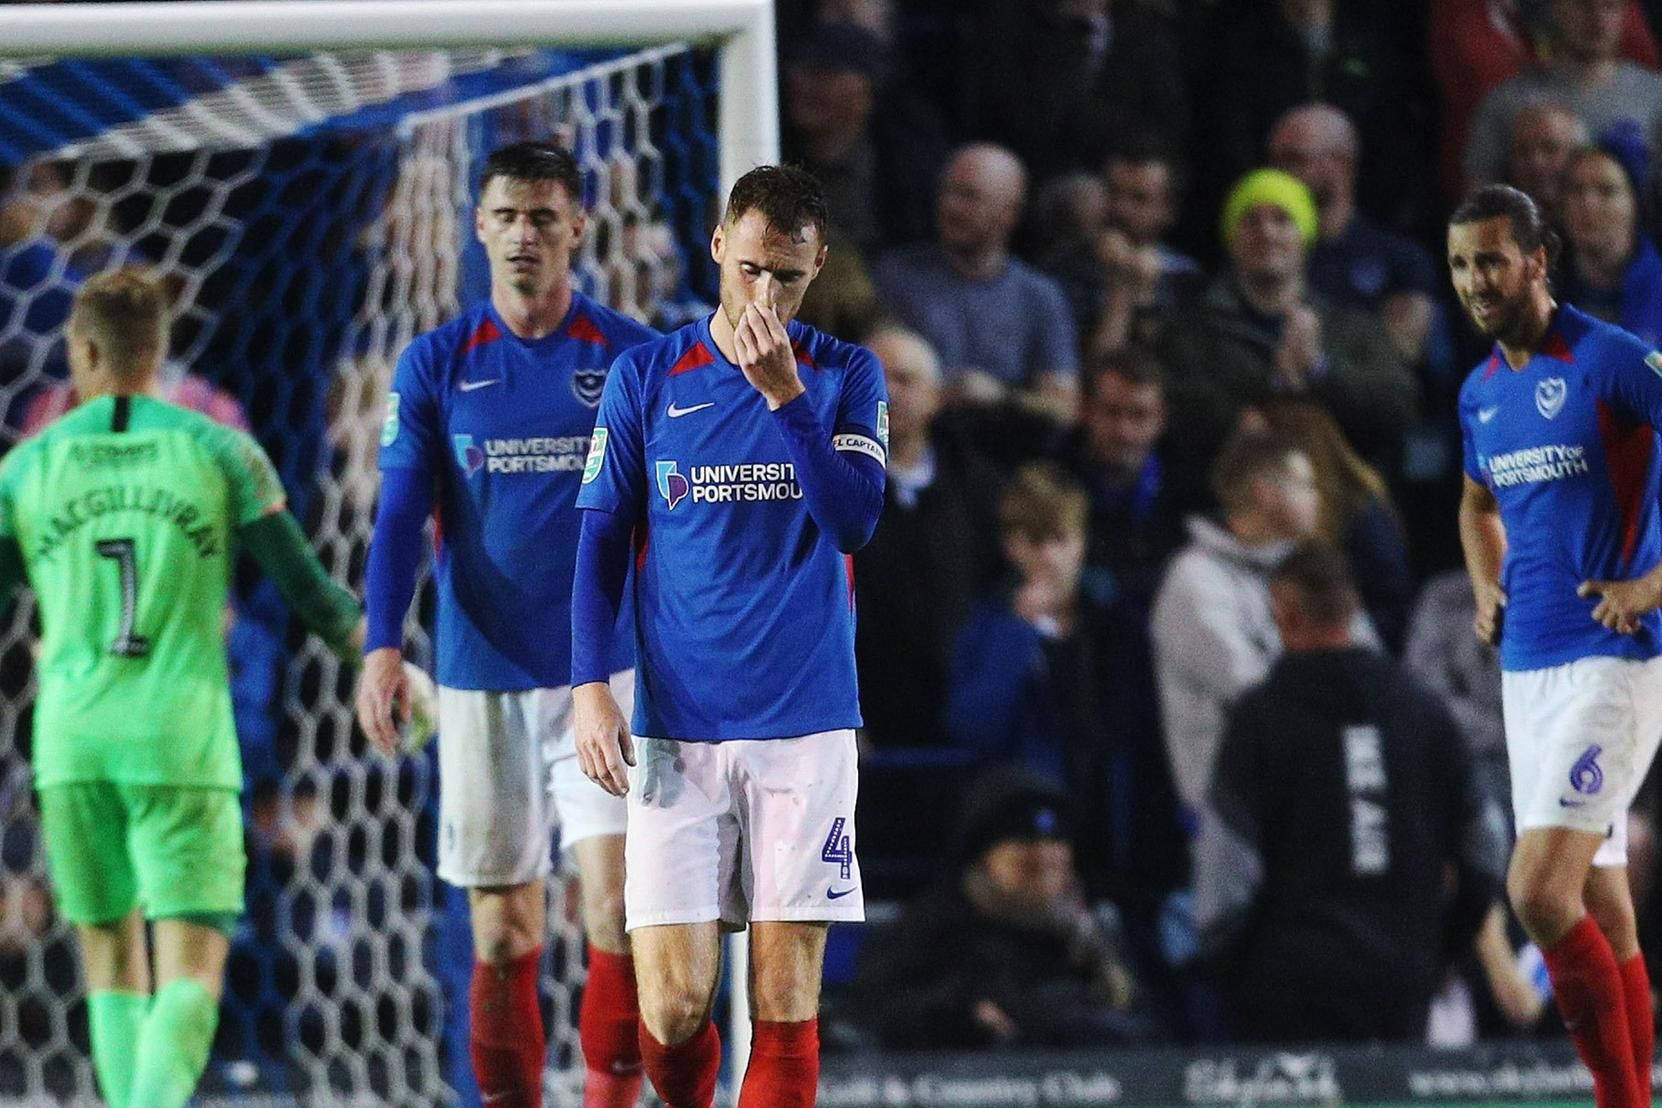 Pompey players are downbeat after conceding against arch-rivals Southampton